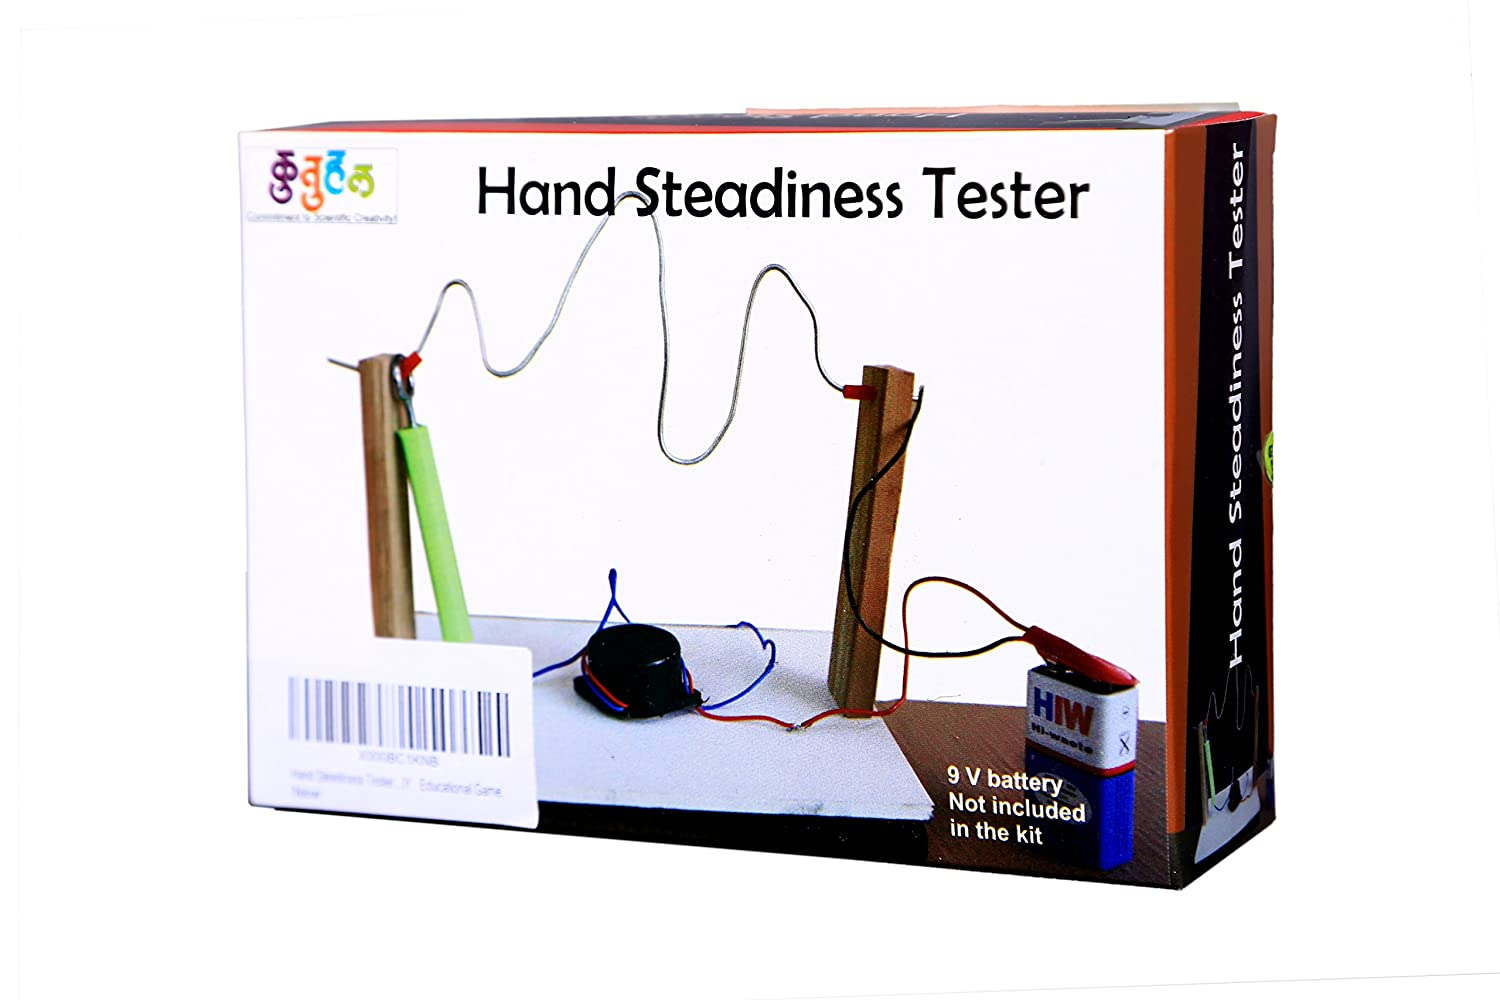 Buy hand steadiness tester making kit do it yourself diy buy hand steadiness tester making kit do it yourself diy working model educational learning toy school project physics science activity kit solutioingenieria